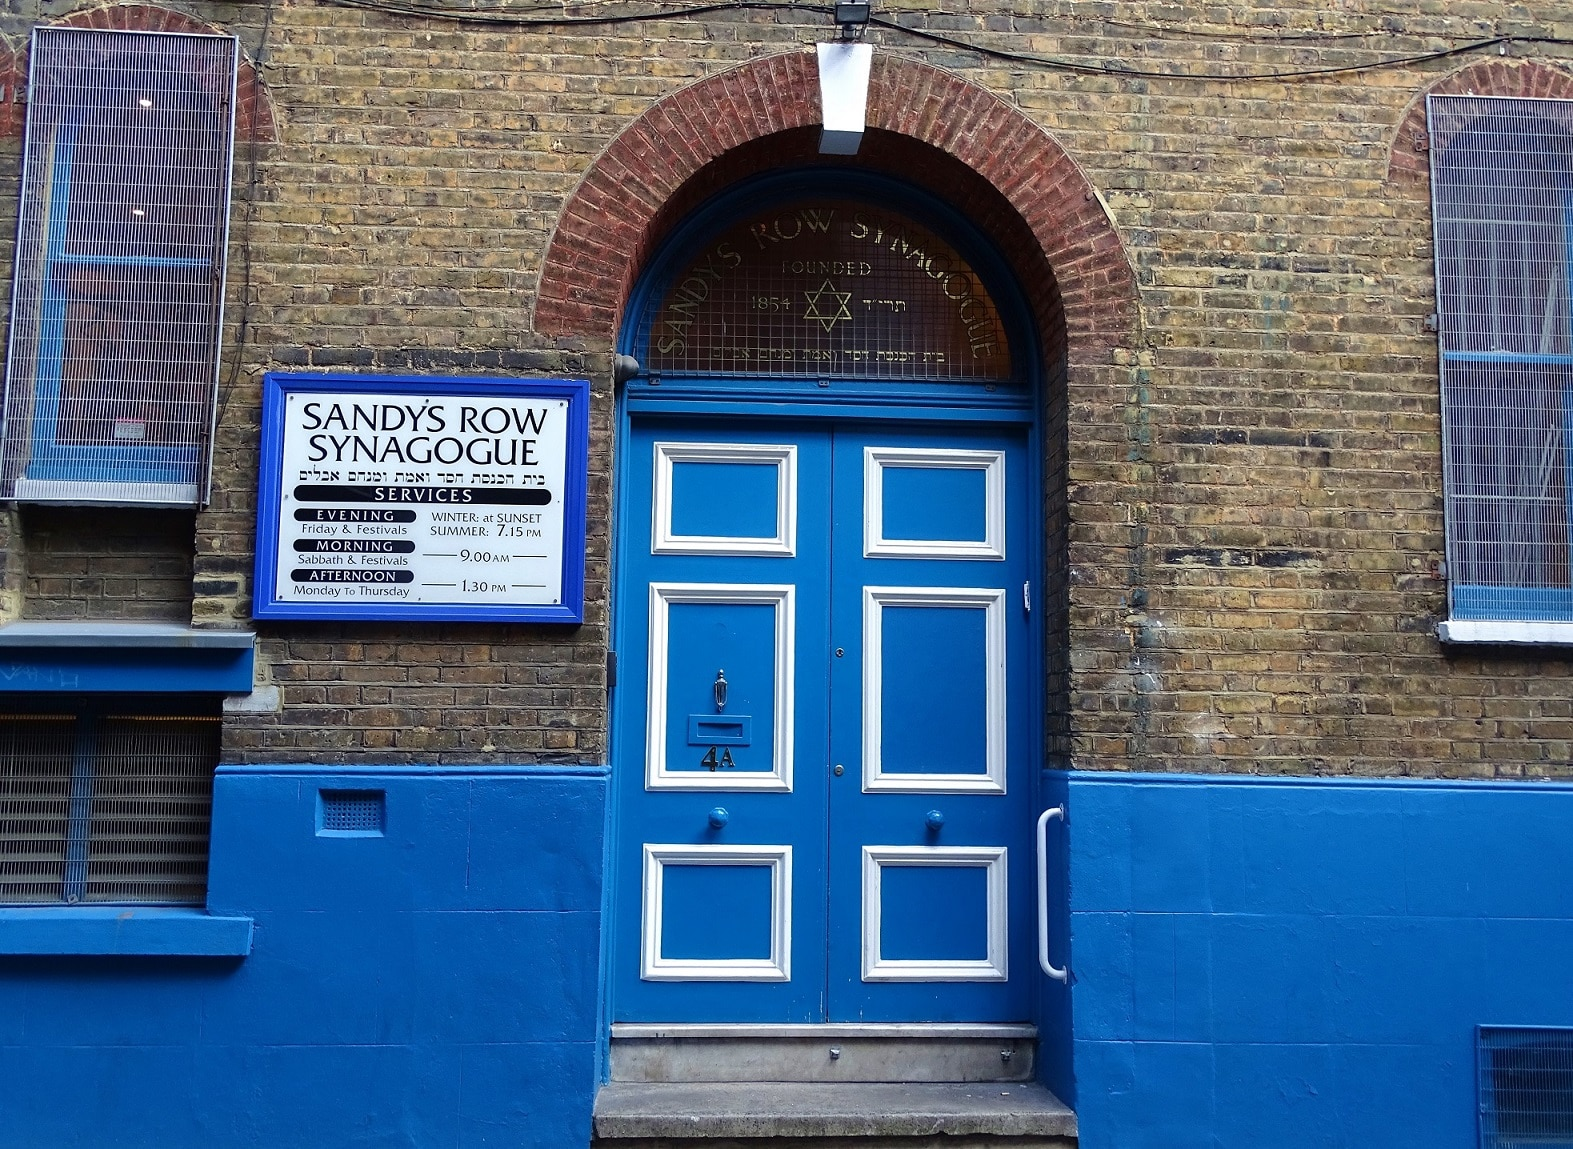 Sandys Row synagogue is London's oldest Ashkenazi synagogue